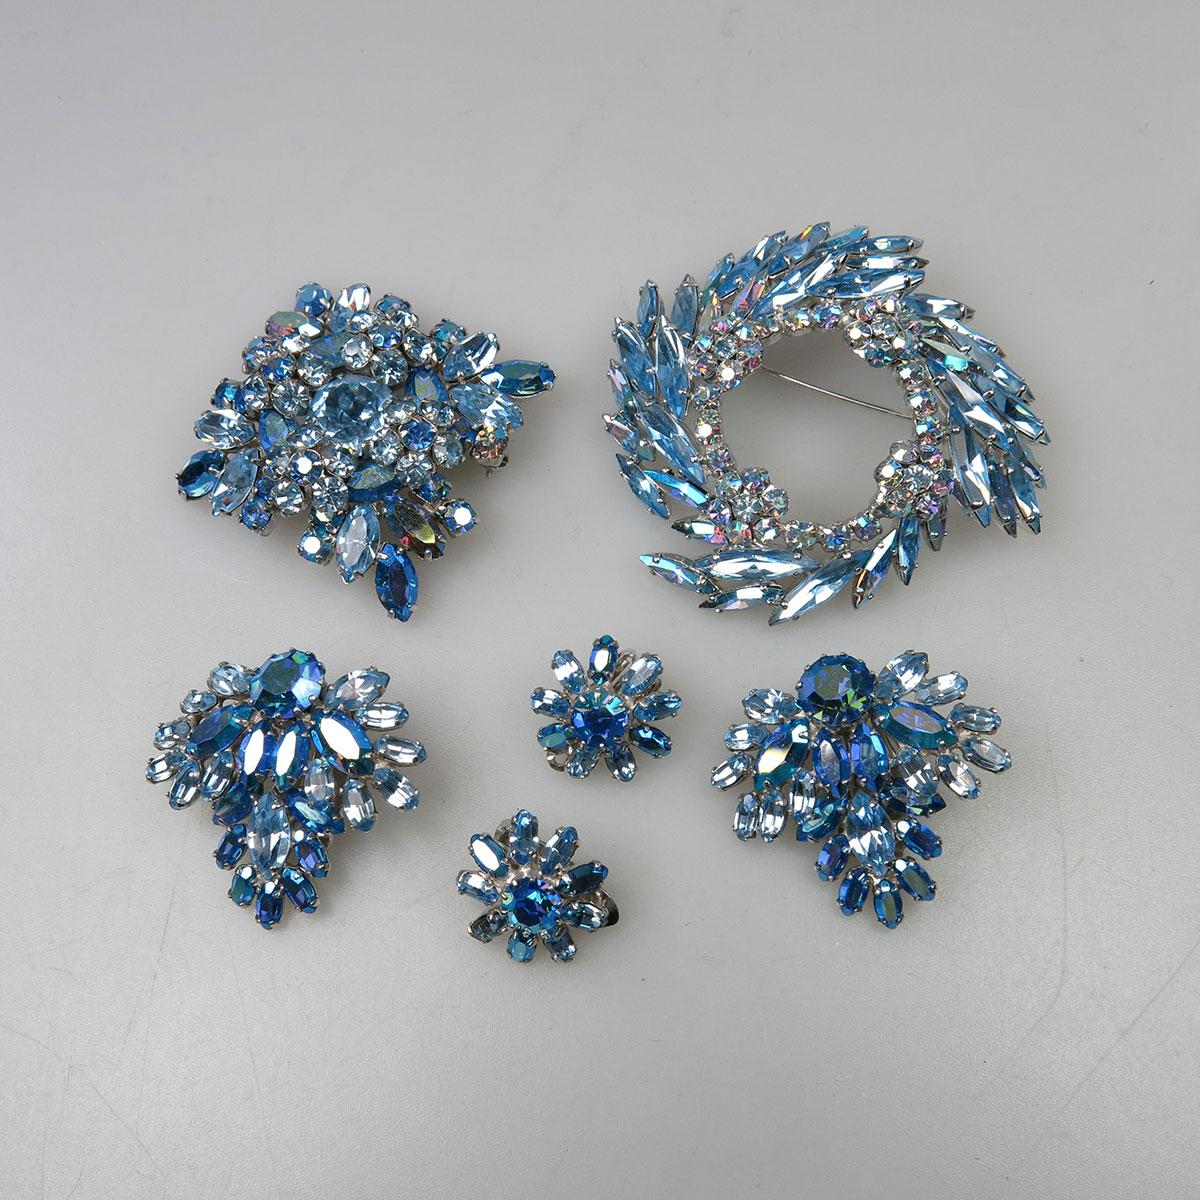 Two Sherman Silver-Tone Metal Brooch And Earring Suites